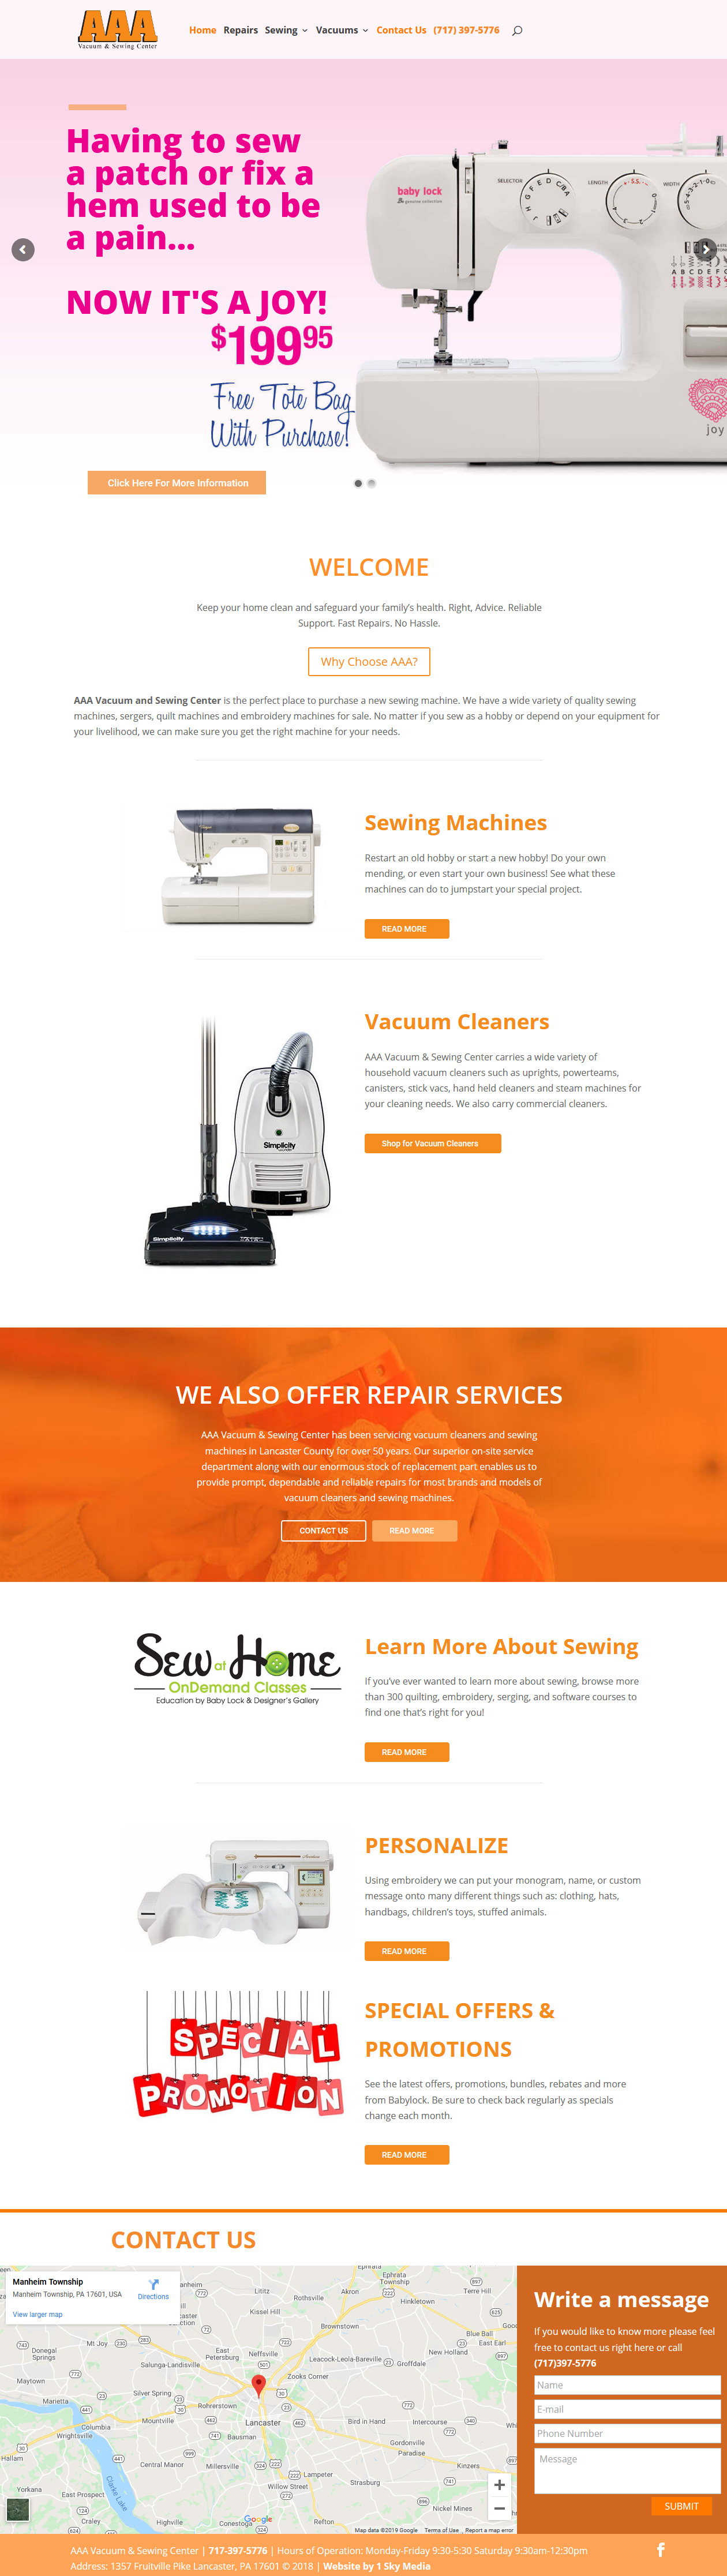 AAA Vacuum & Sewing Center website design